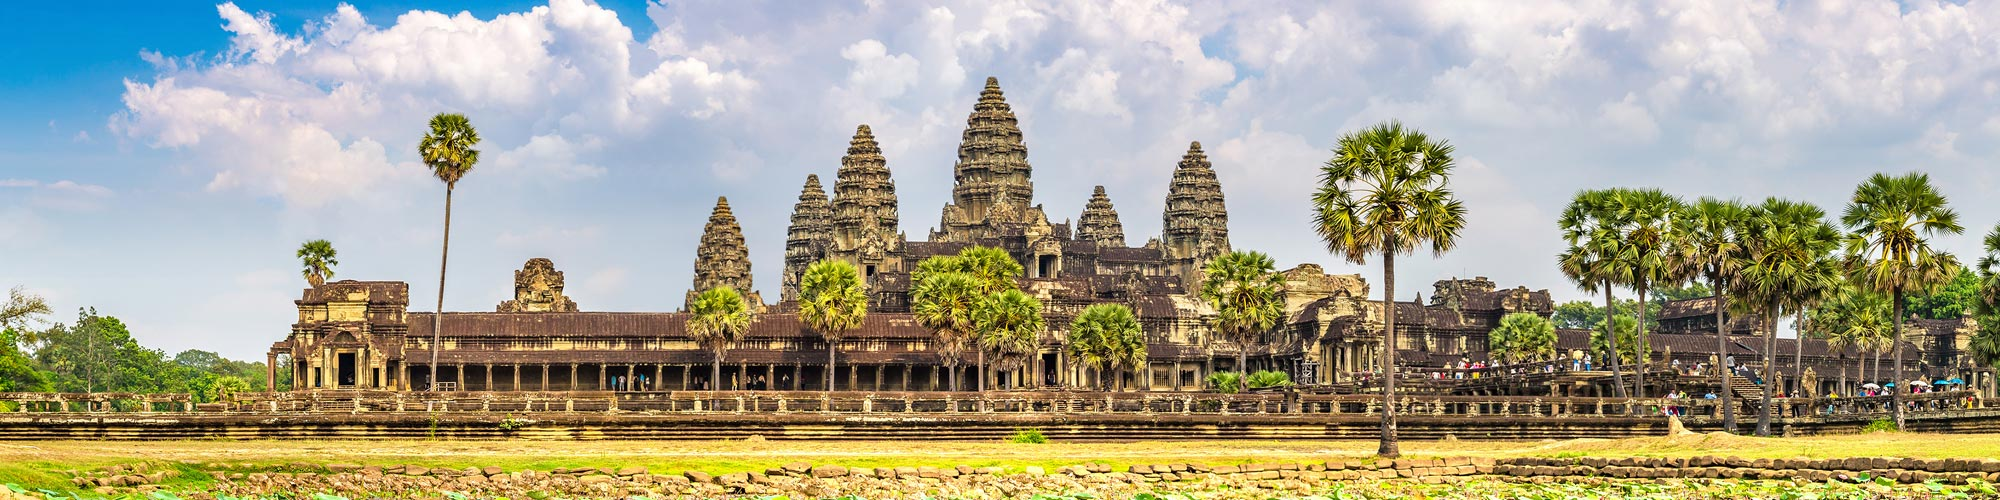 Cambodia Travel Guide 1